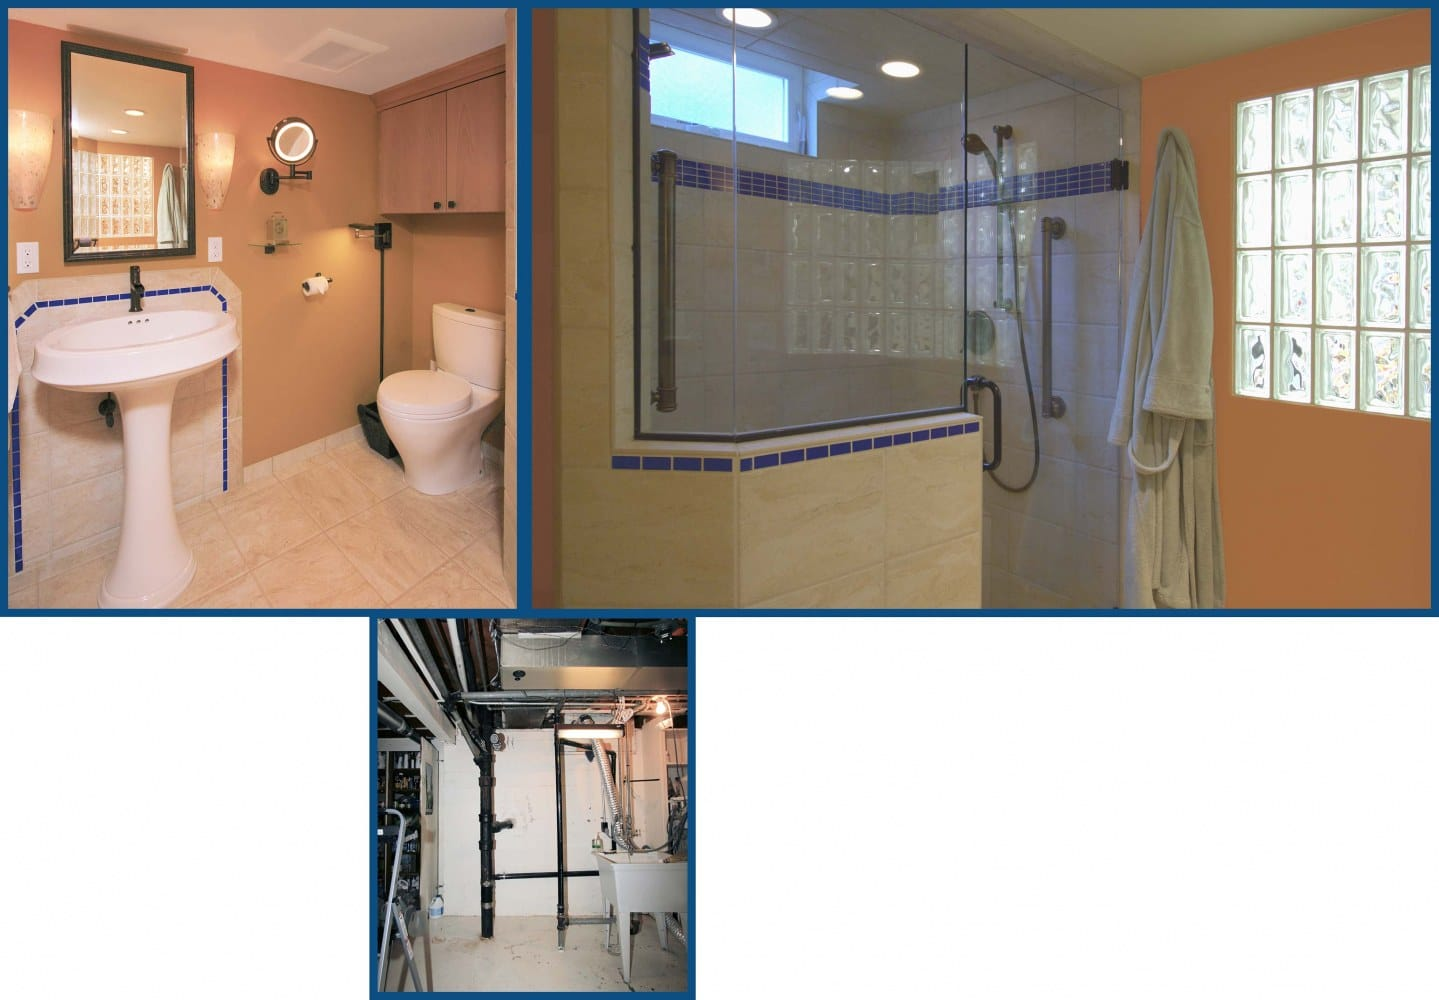 Portland Basement Bathroom Before and After